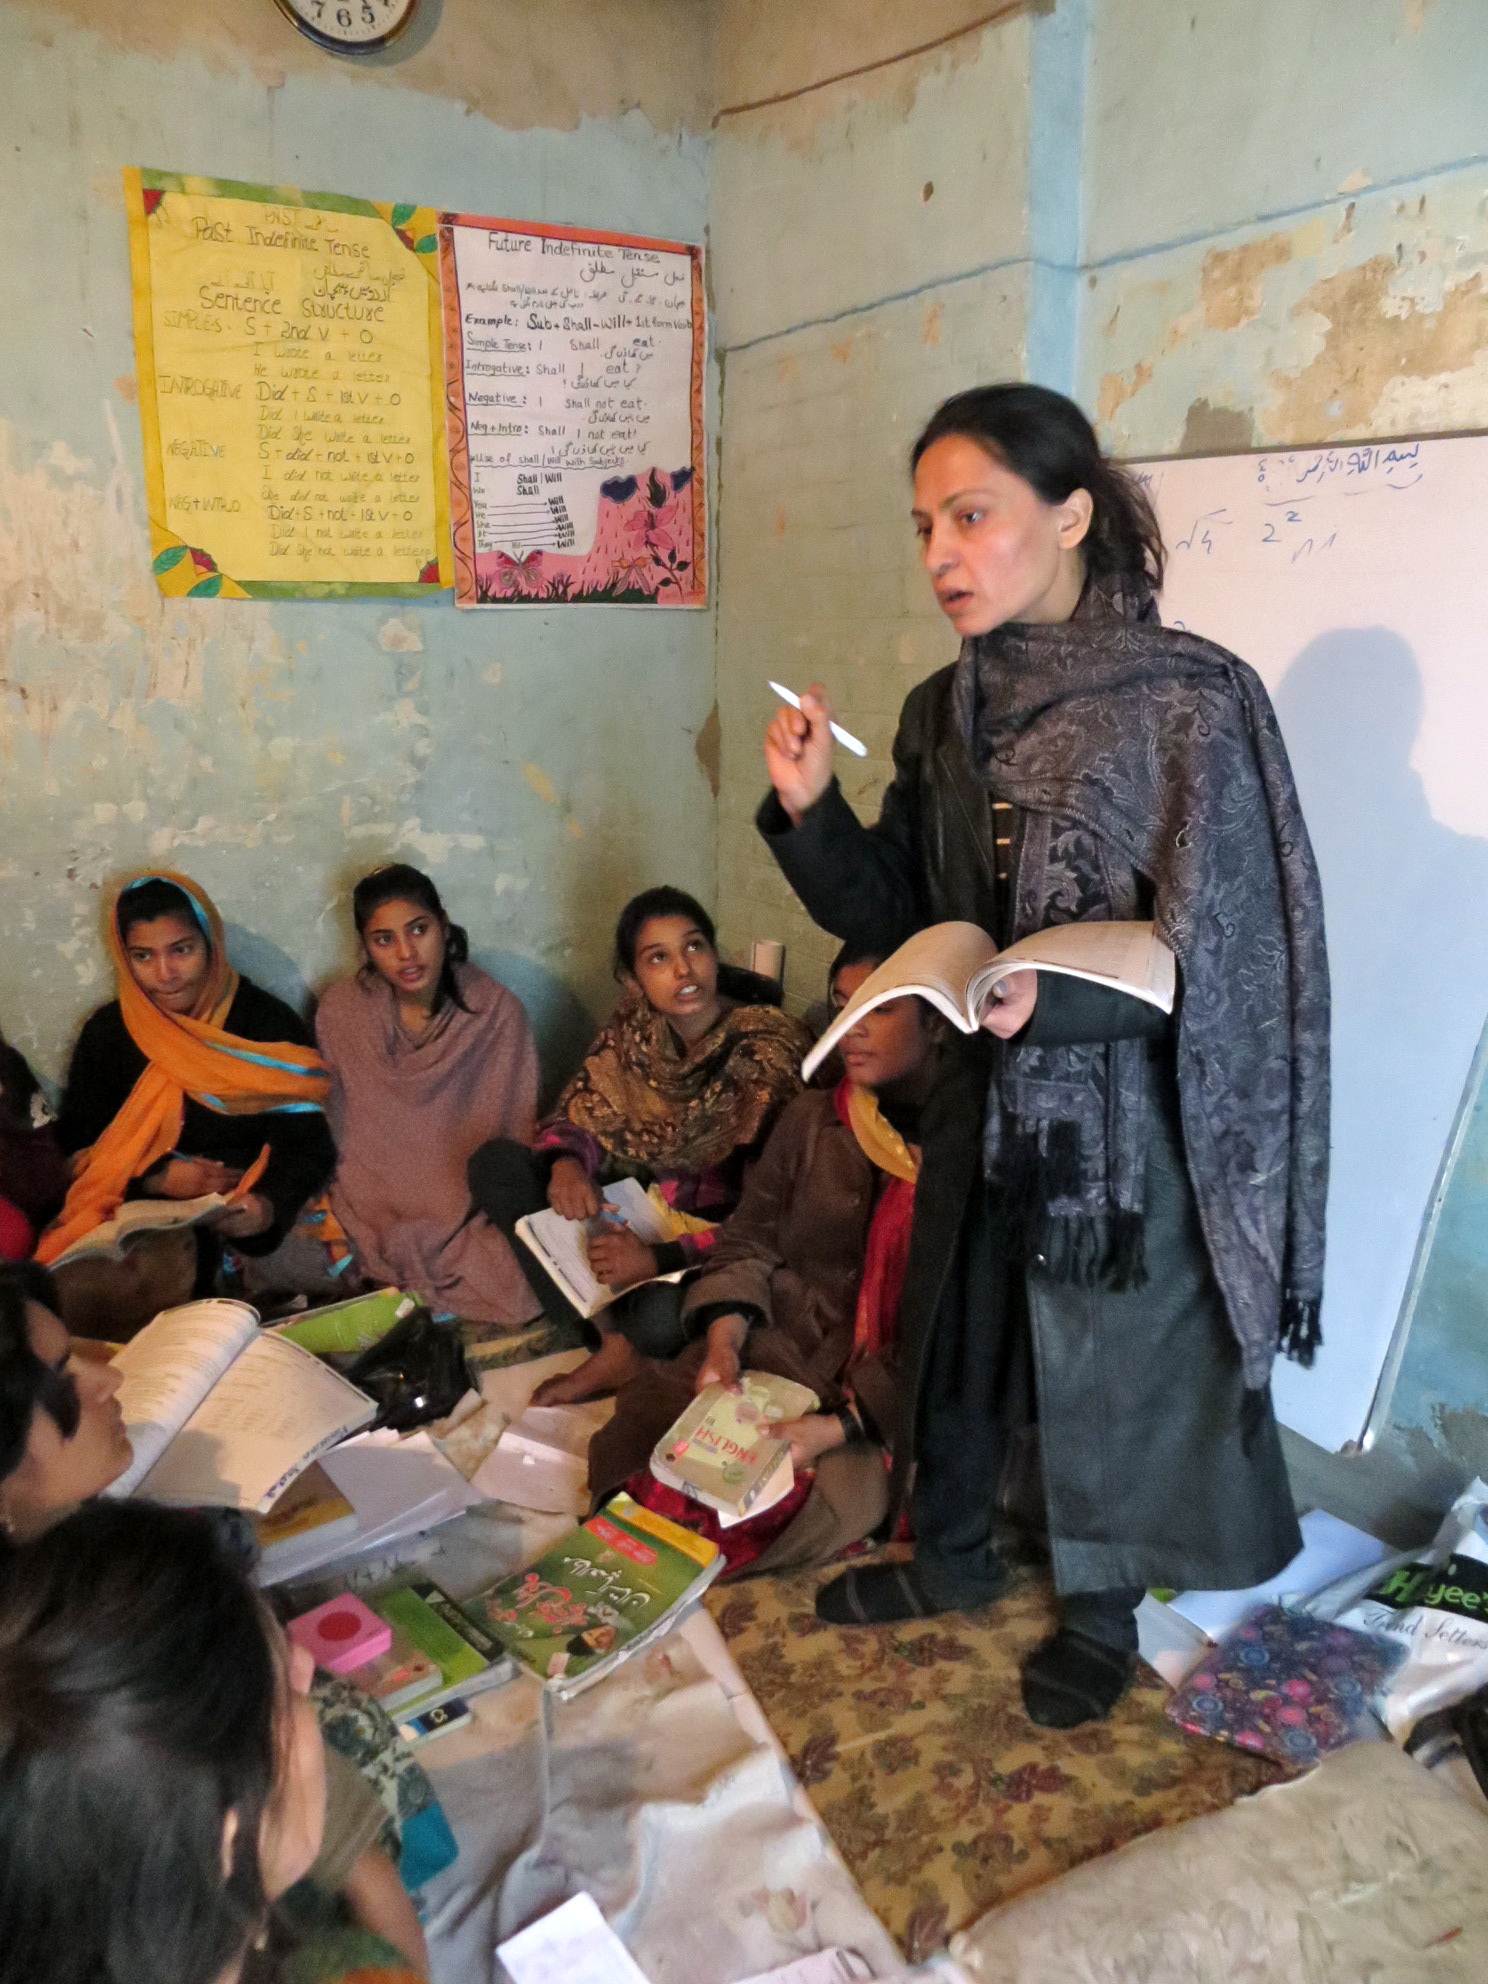 Nilofer Bano Armanshah, reviews a lesson on homonyms to help her students prepare for the 9th and 10th grade board exams. She teaches at a two-room school run by the NGO Plan International, which offers women who dropped out of school a chance to complete their studies.